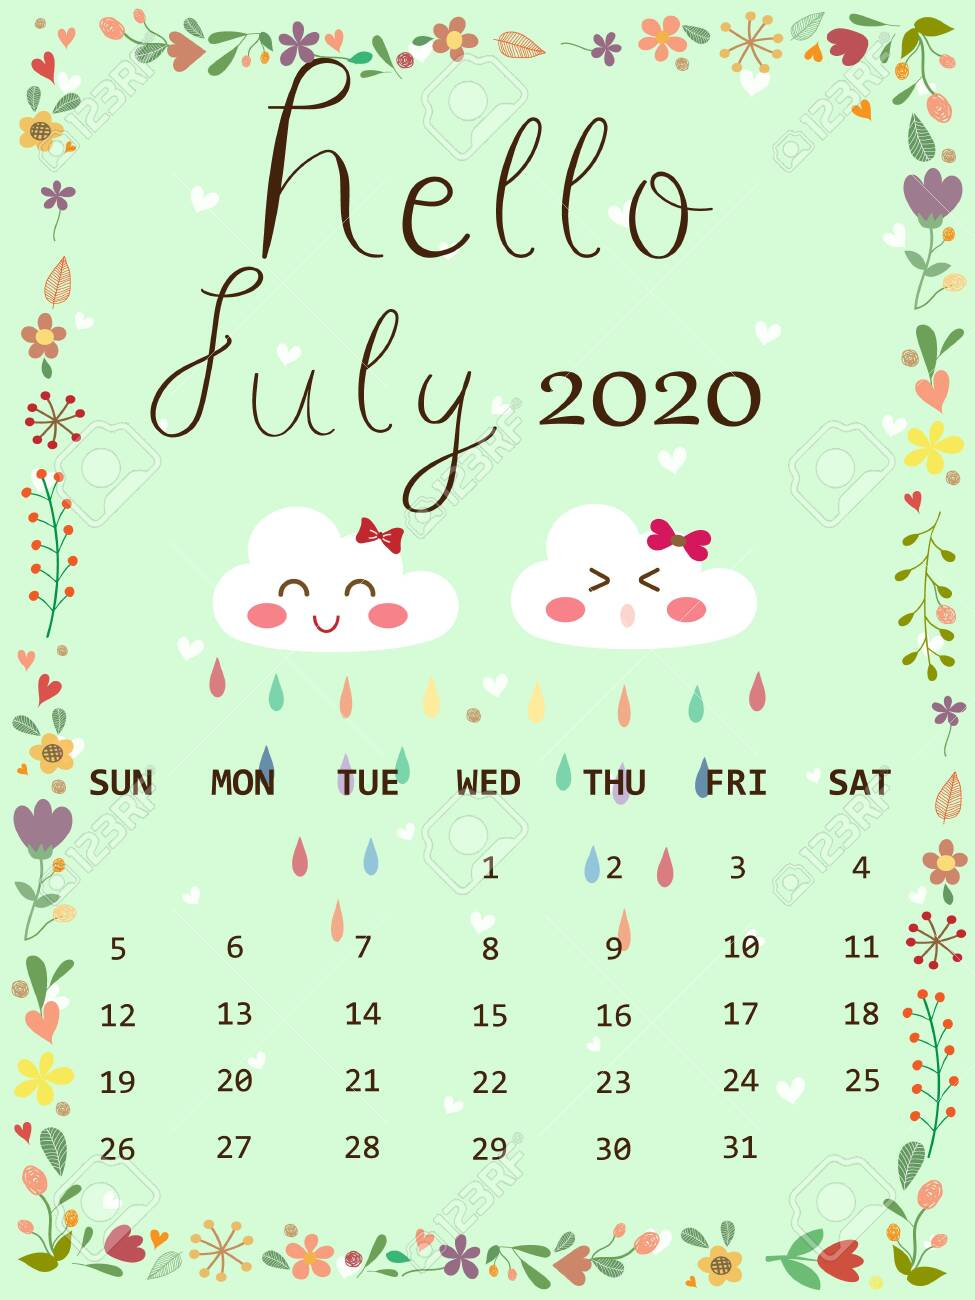 Cute calendar 2020 July in rainy season concept with copy space. Cute pastel blue sky color background with white cloud and raindrop and white heart look so sweet and romantic.Wallpaper vector design. - 149186931